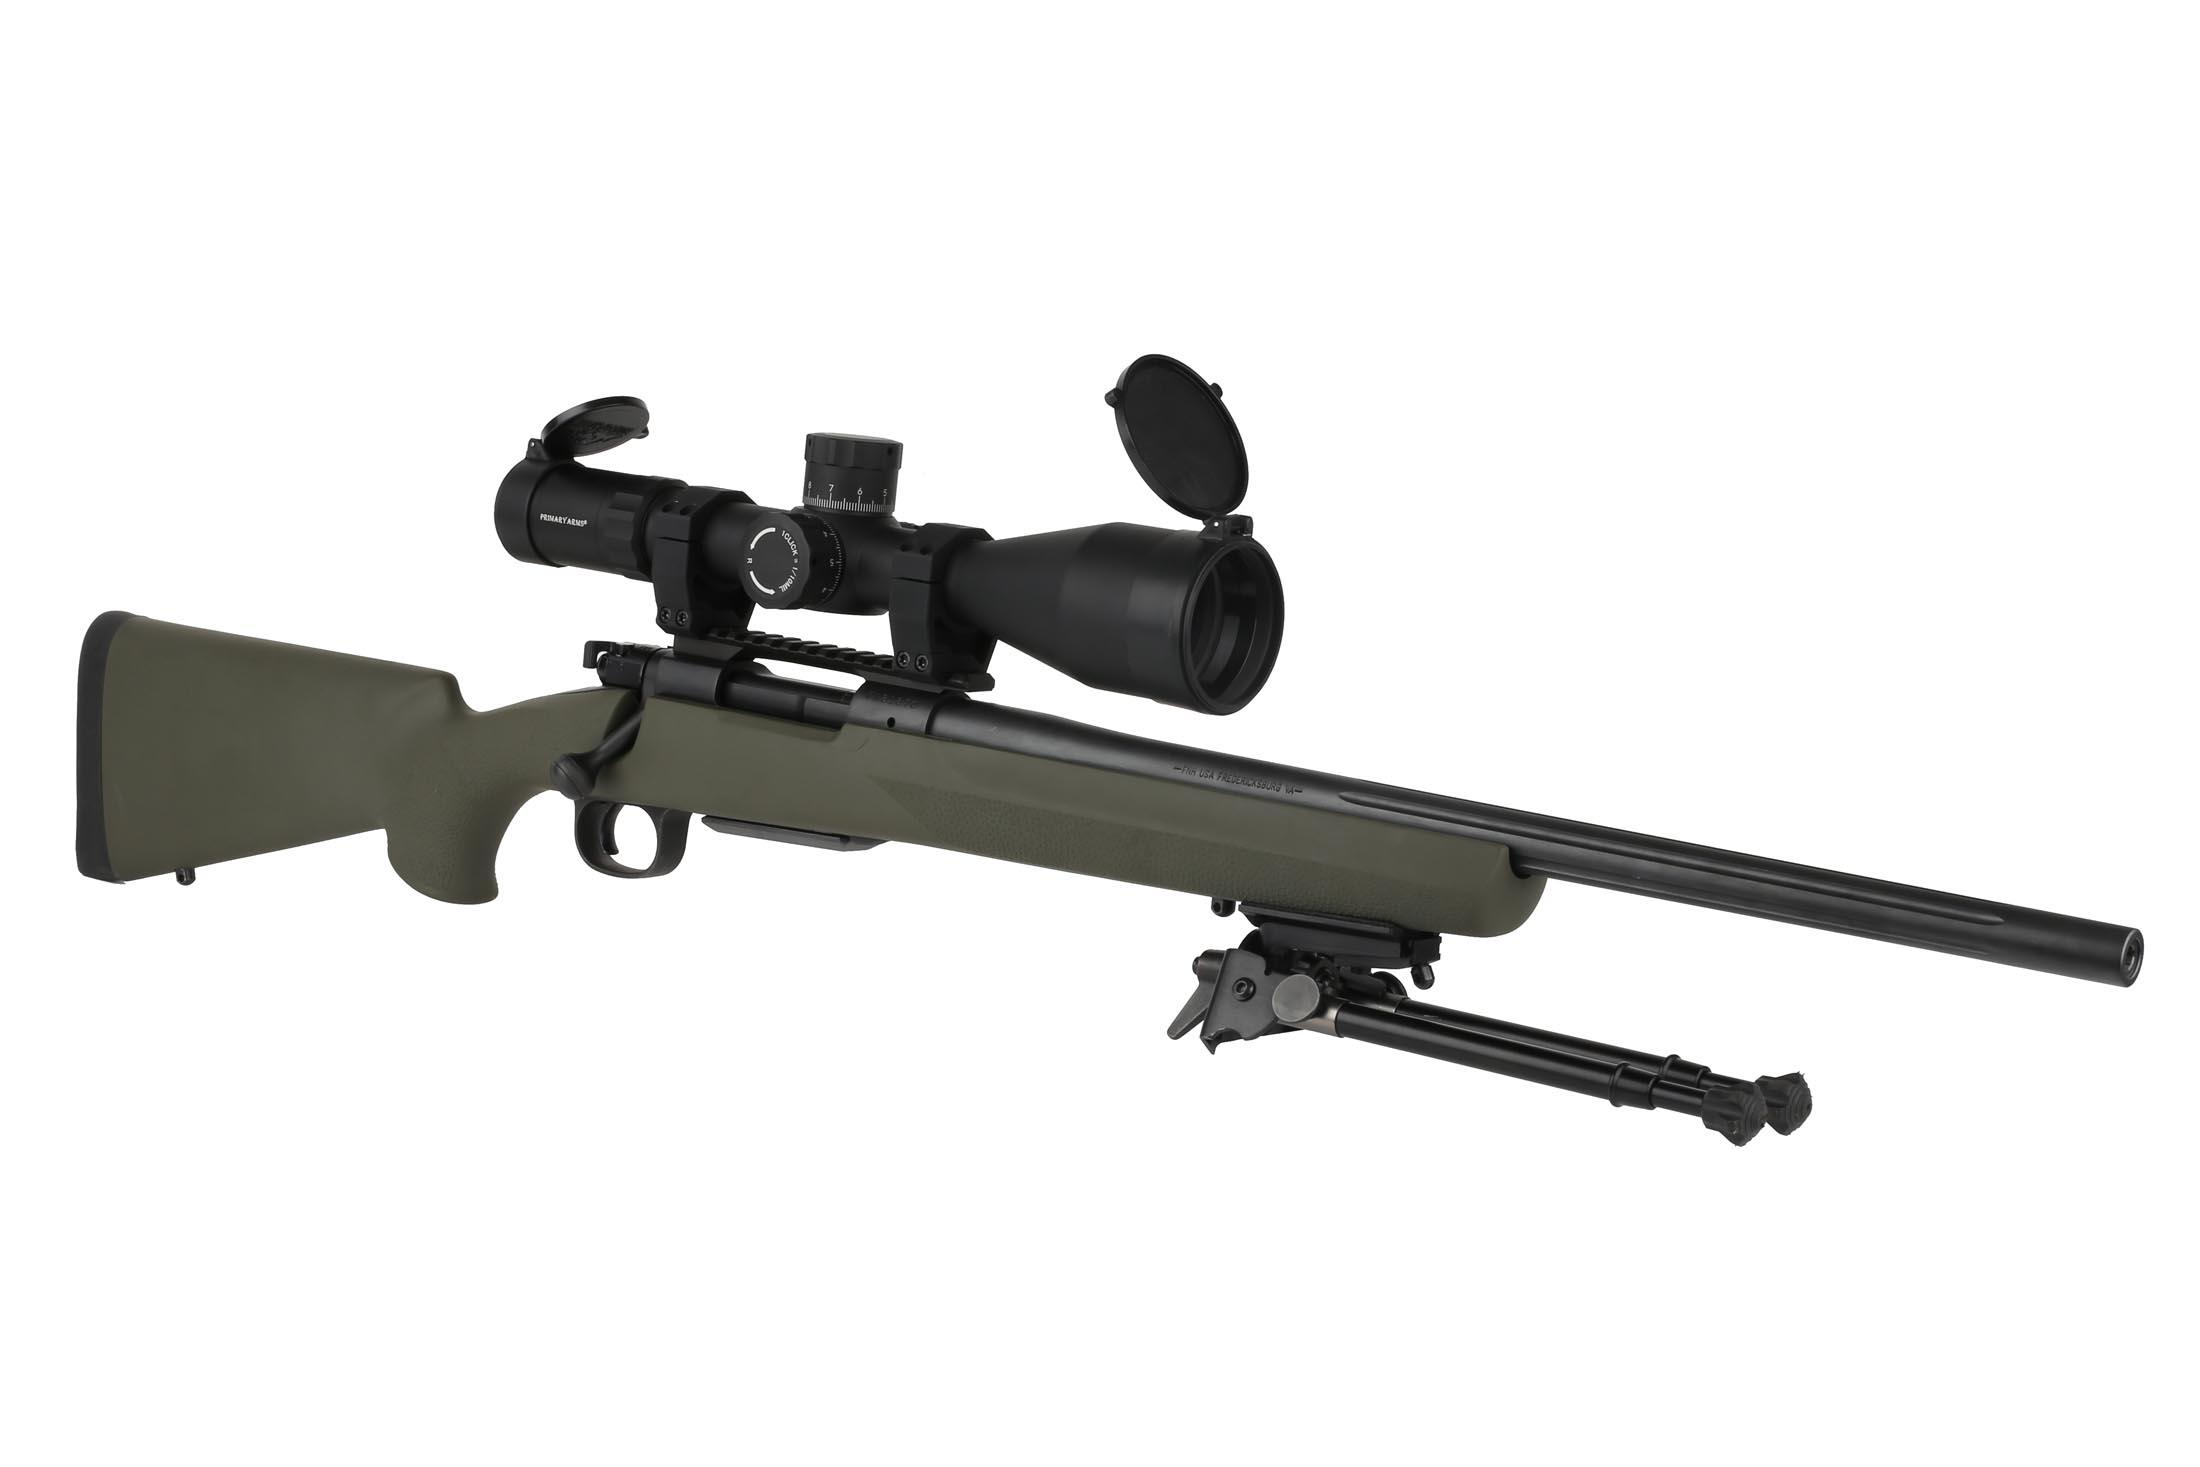 Platinum series 6-30x56mm PLX5 rifle scope with ACSS HUD DMR reticle is equally at home on bolt action or precision gas rifles